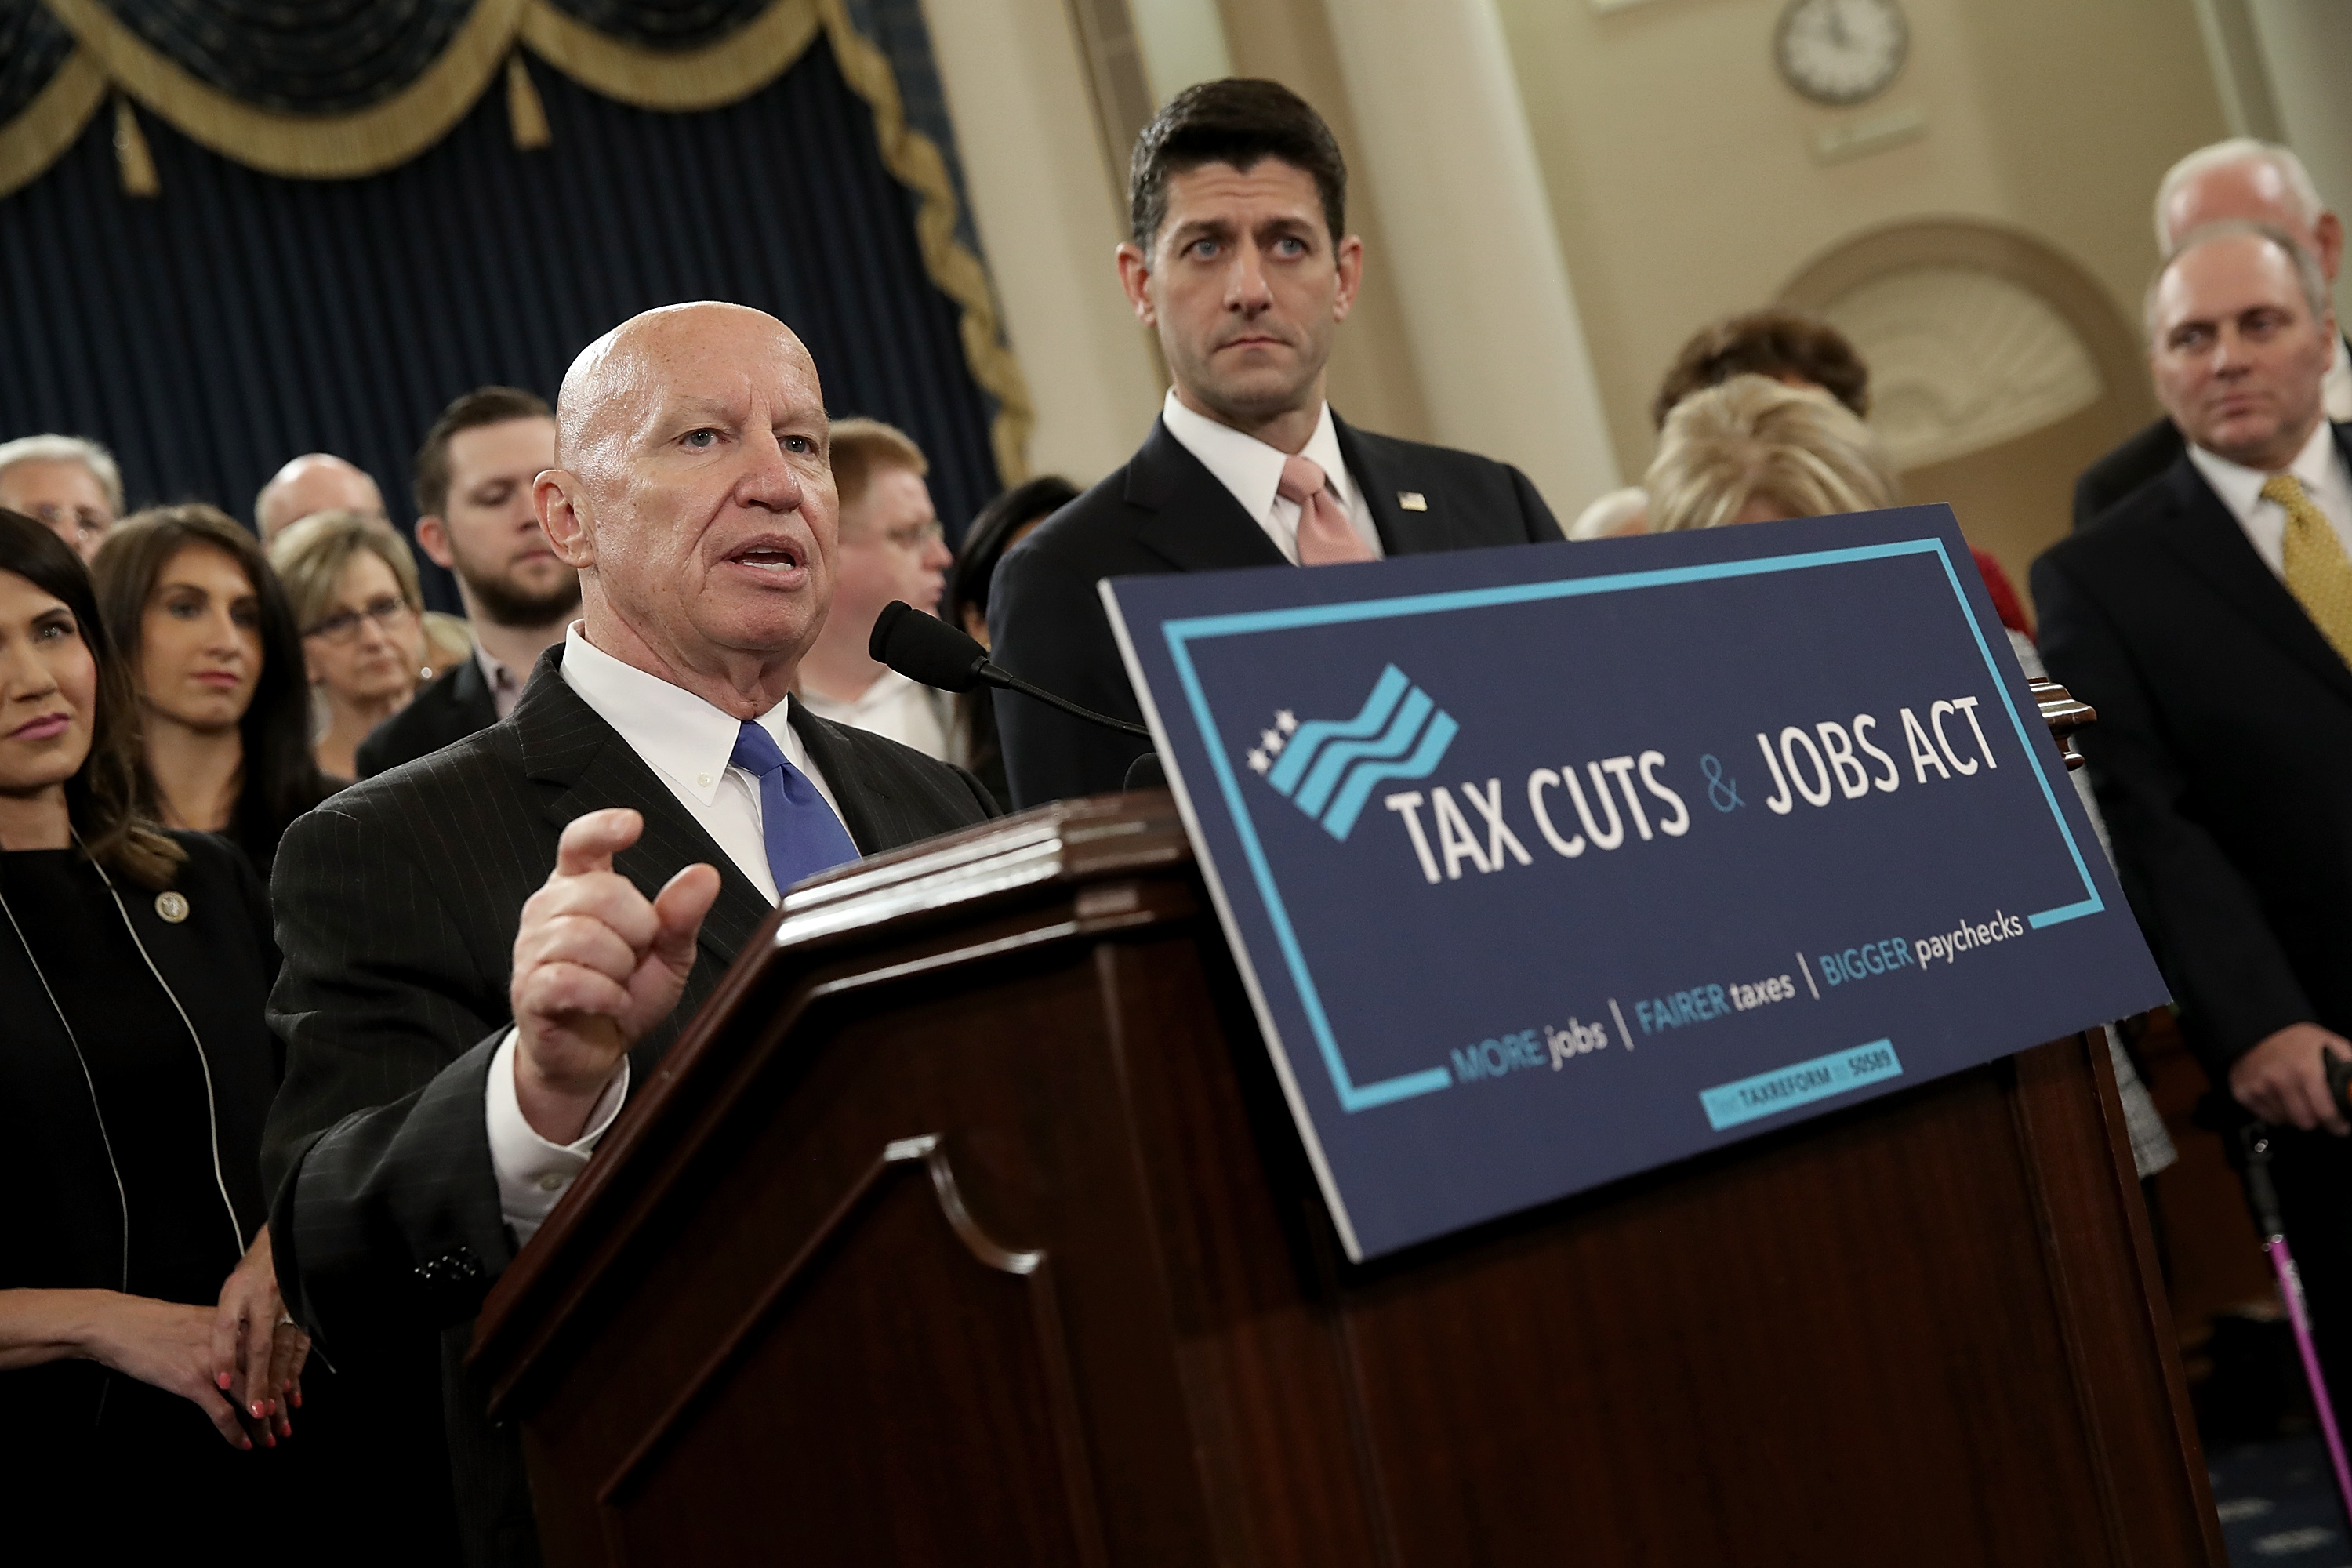 House Way and Means Chairman Kevin Brady and Republican House Speaker Paul Ryan introduce tax reform legislation on Nov. 2, 2017 in Washington, D.C.